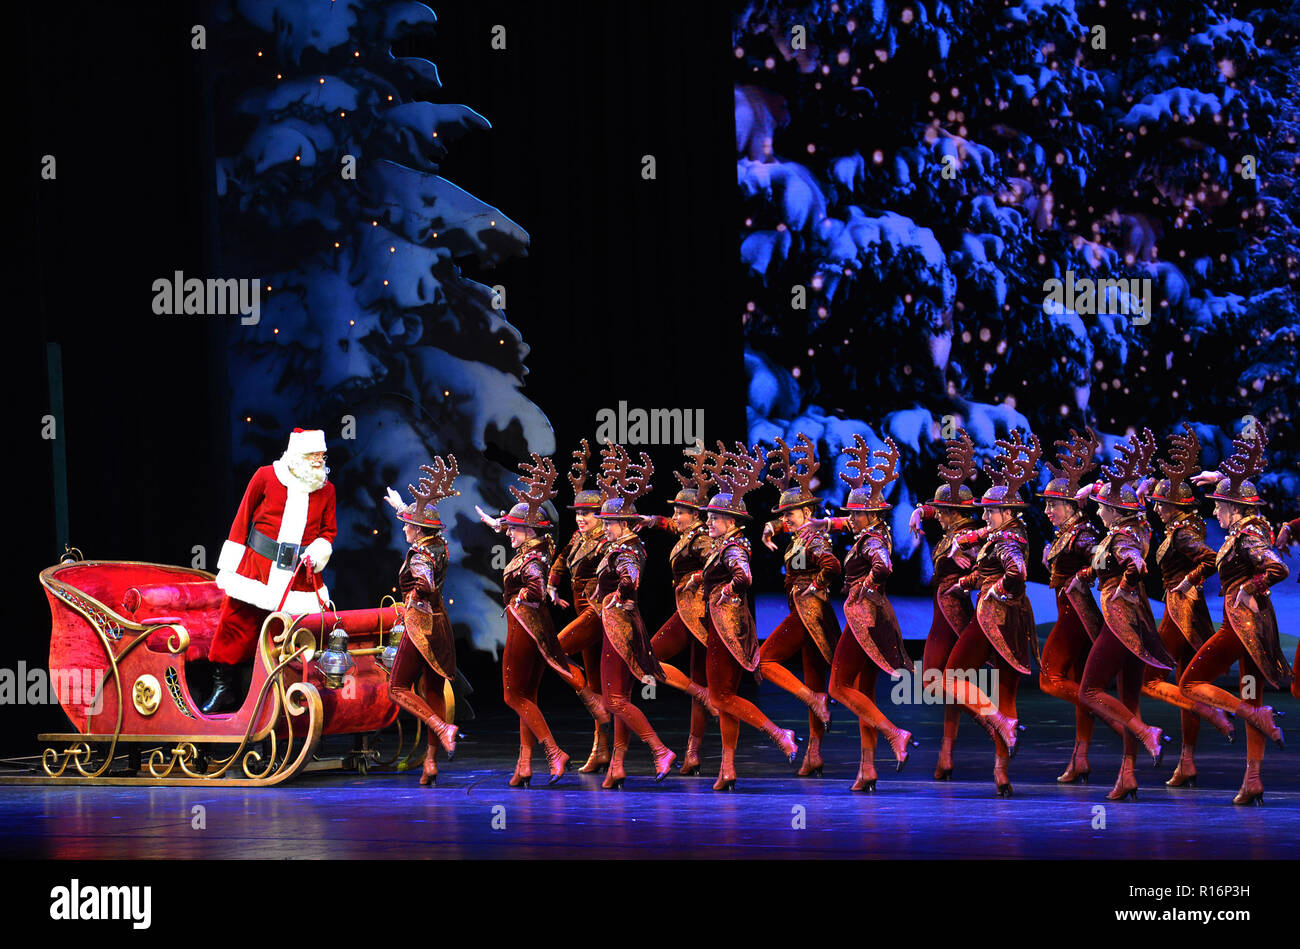 Christmas Show 2019 New York, Nov. 9. 1st Jan, 2019. The Rockettes perform during the